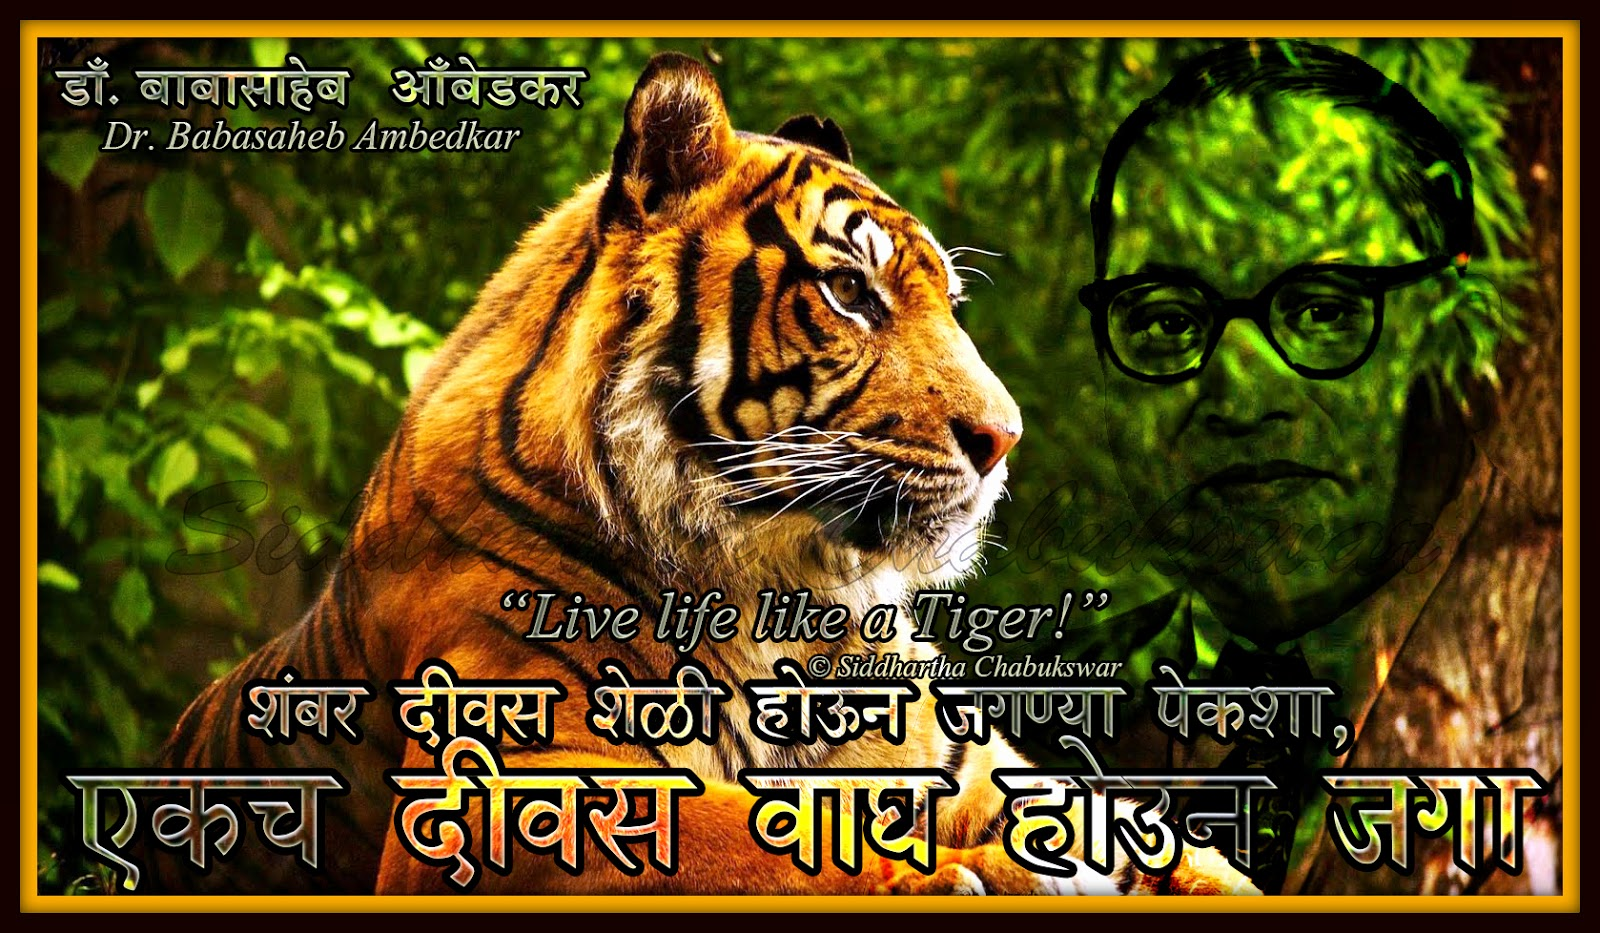 Live+life+like+a+tiger+Dr+Babasaheb+Ambedkar+Wallpaper+HD+Waagha ...